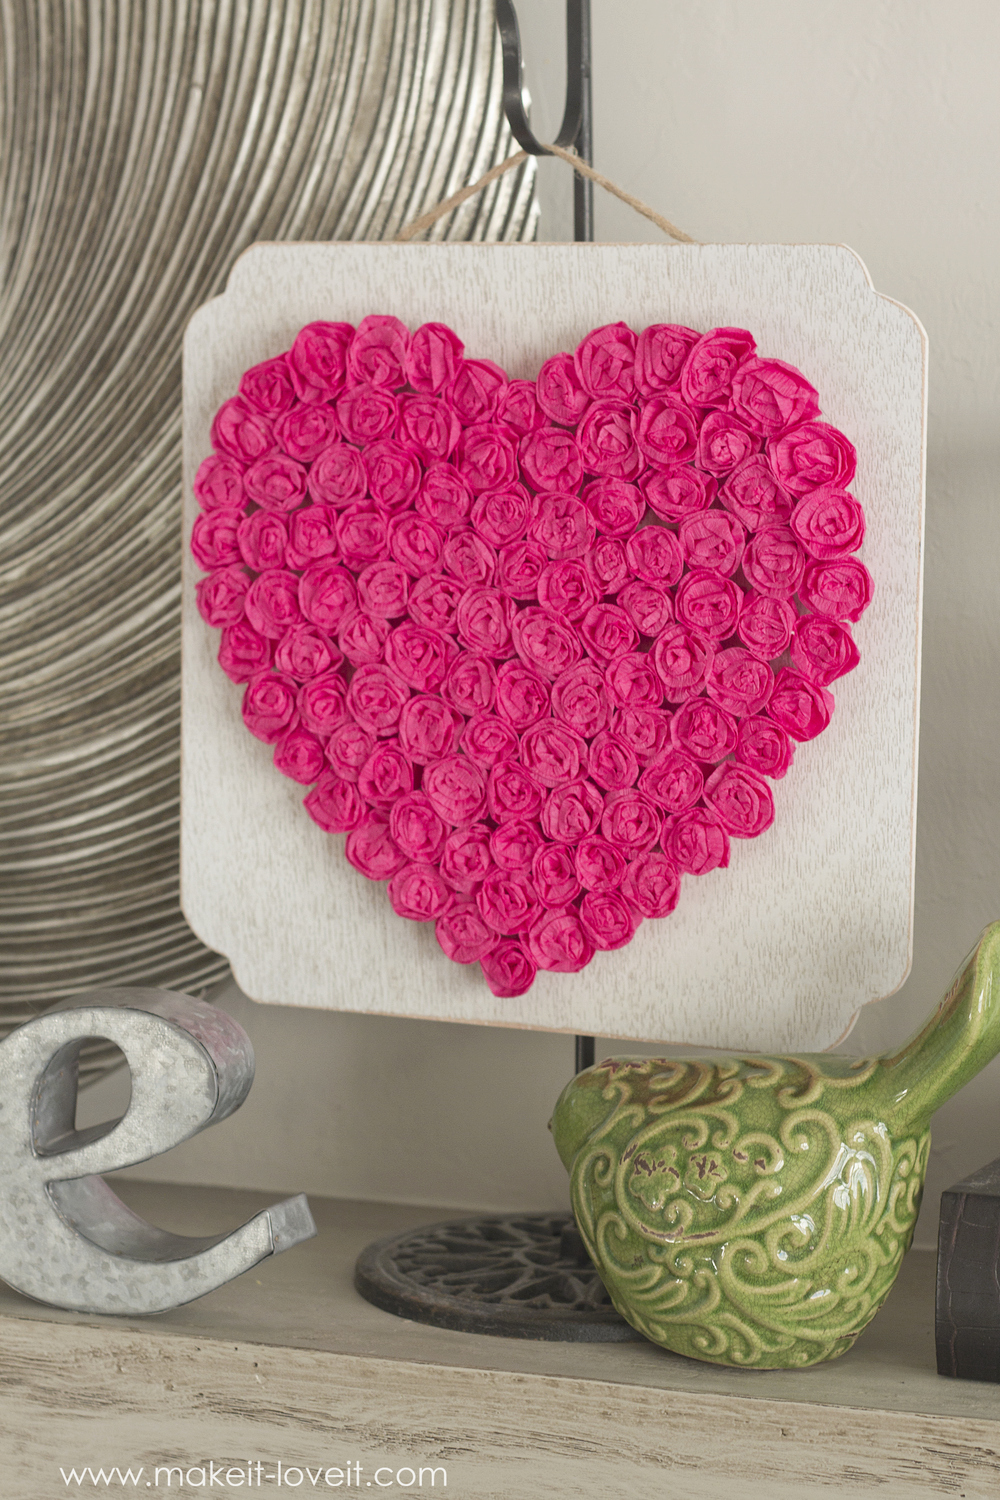 DIY Crepe Paper Rose Heart…inexpensive Valentine decor (or any time of year!)